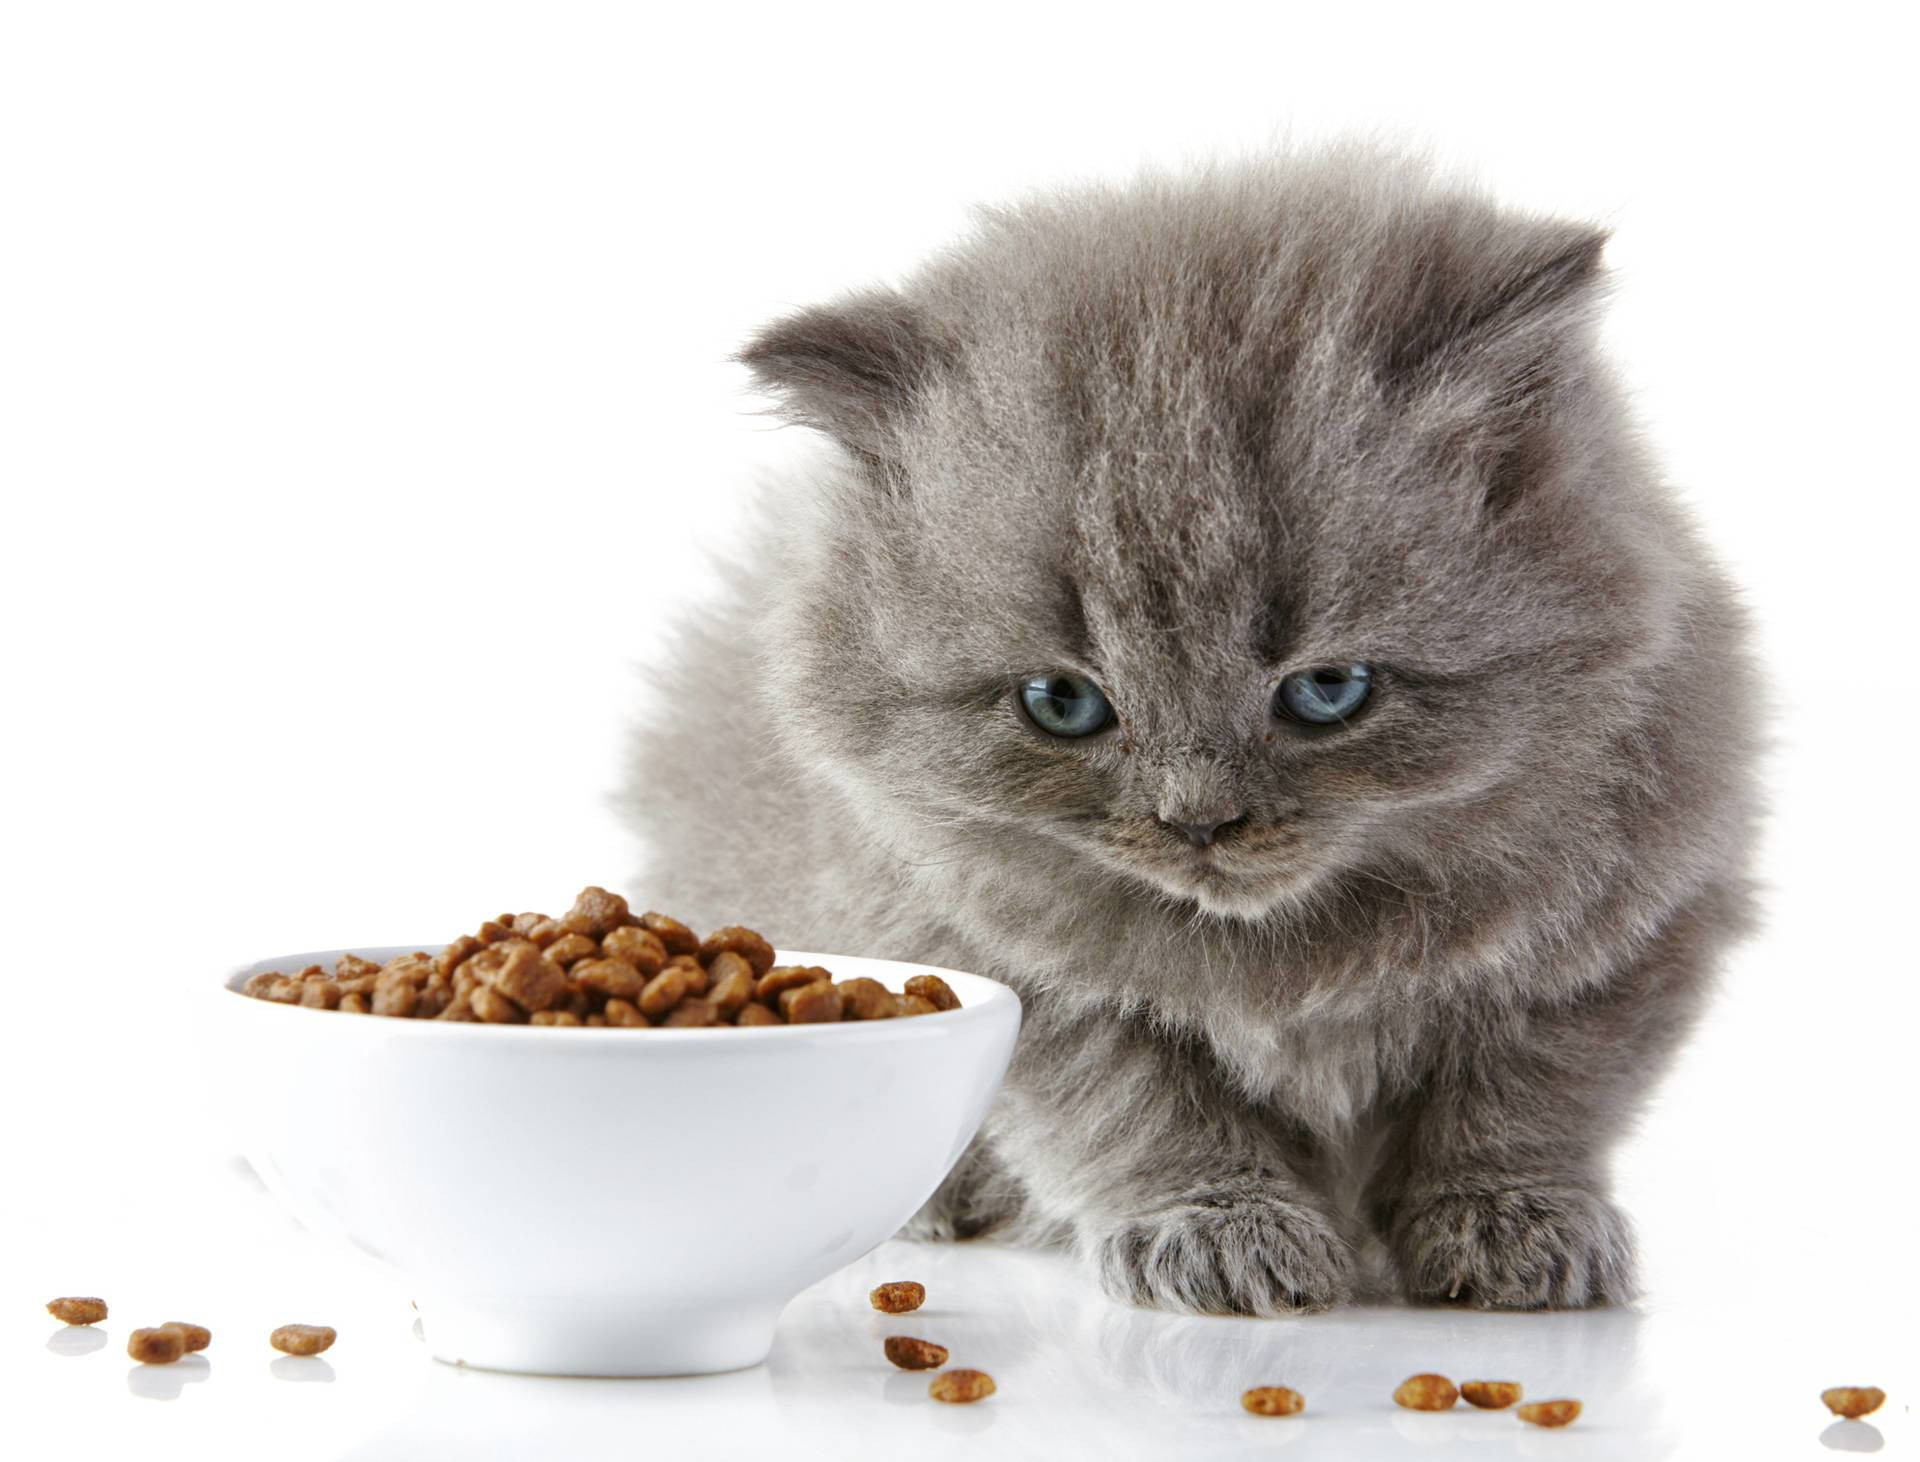 cats-taste-food-vet-organics